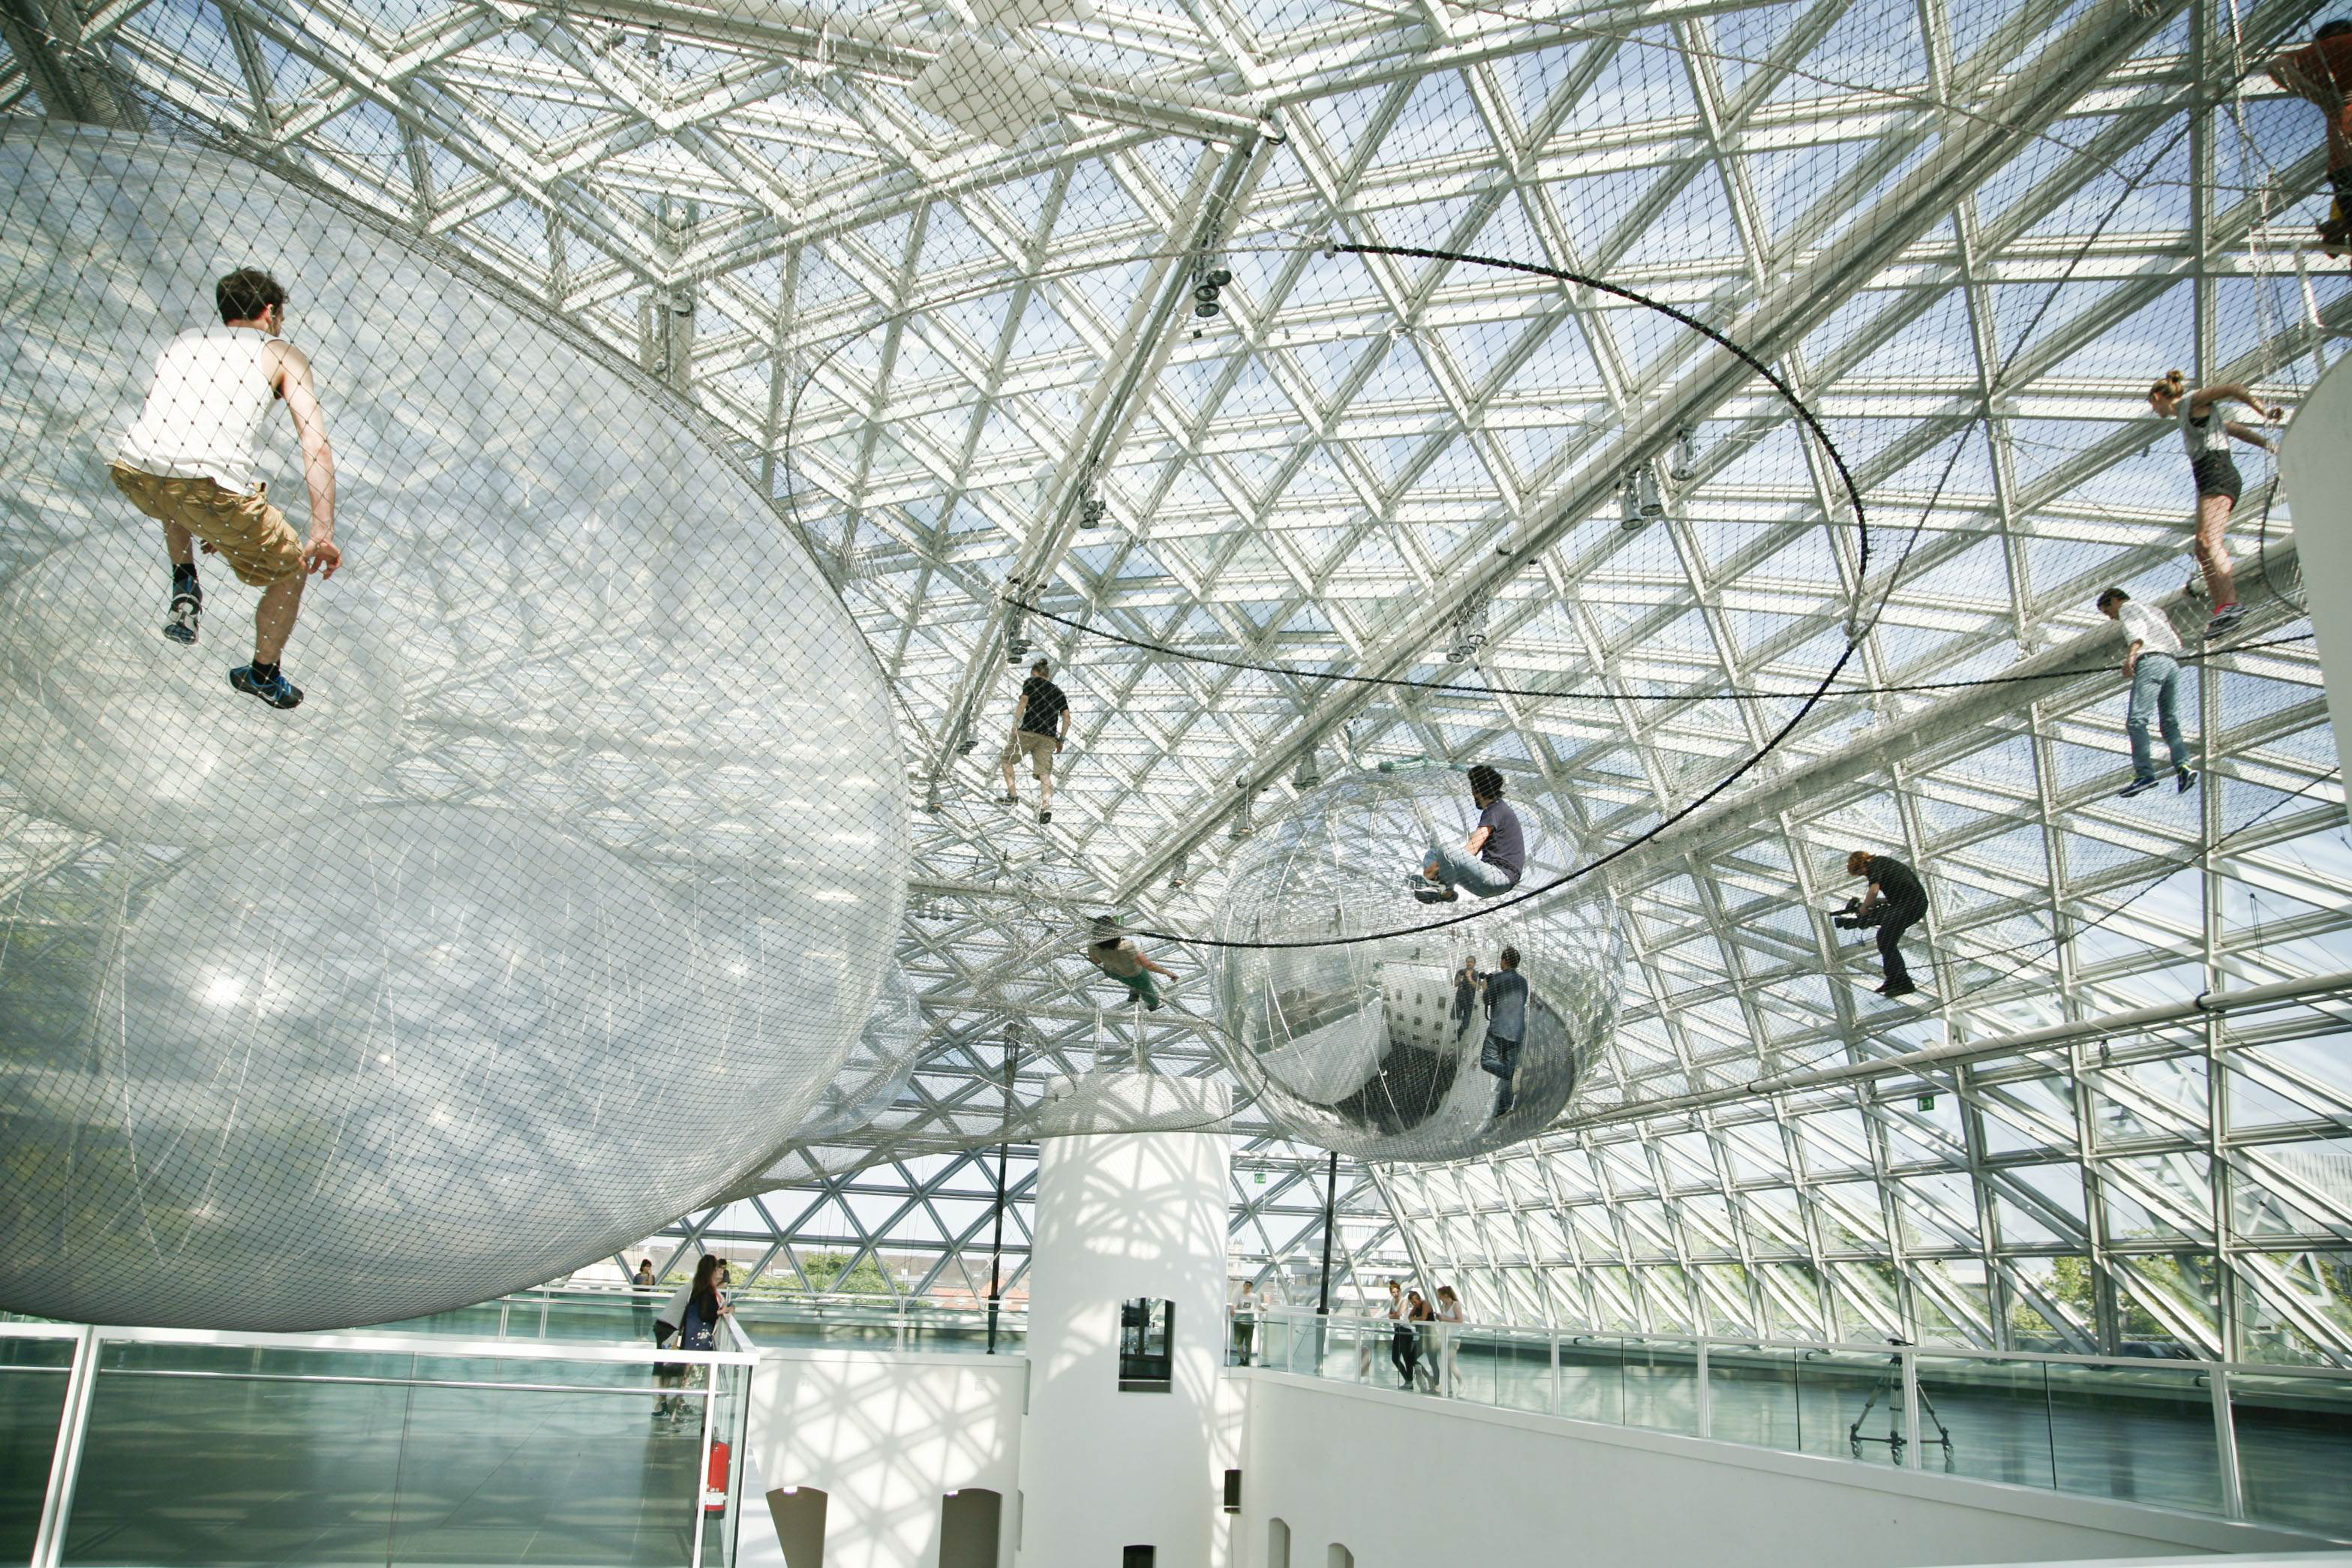 ab 21 6 k21 d sseldorf tom s saraceno in orbit. Black Bedroom Furniture Sets. Home Design Ideas